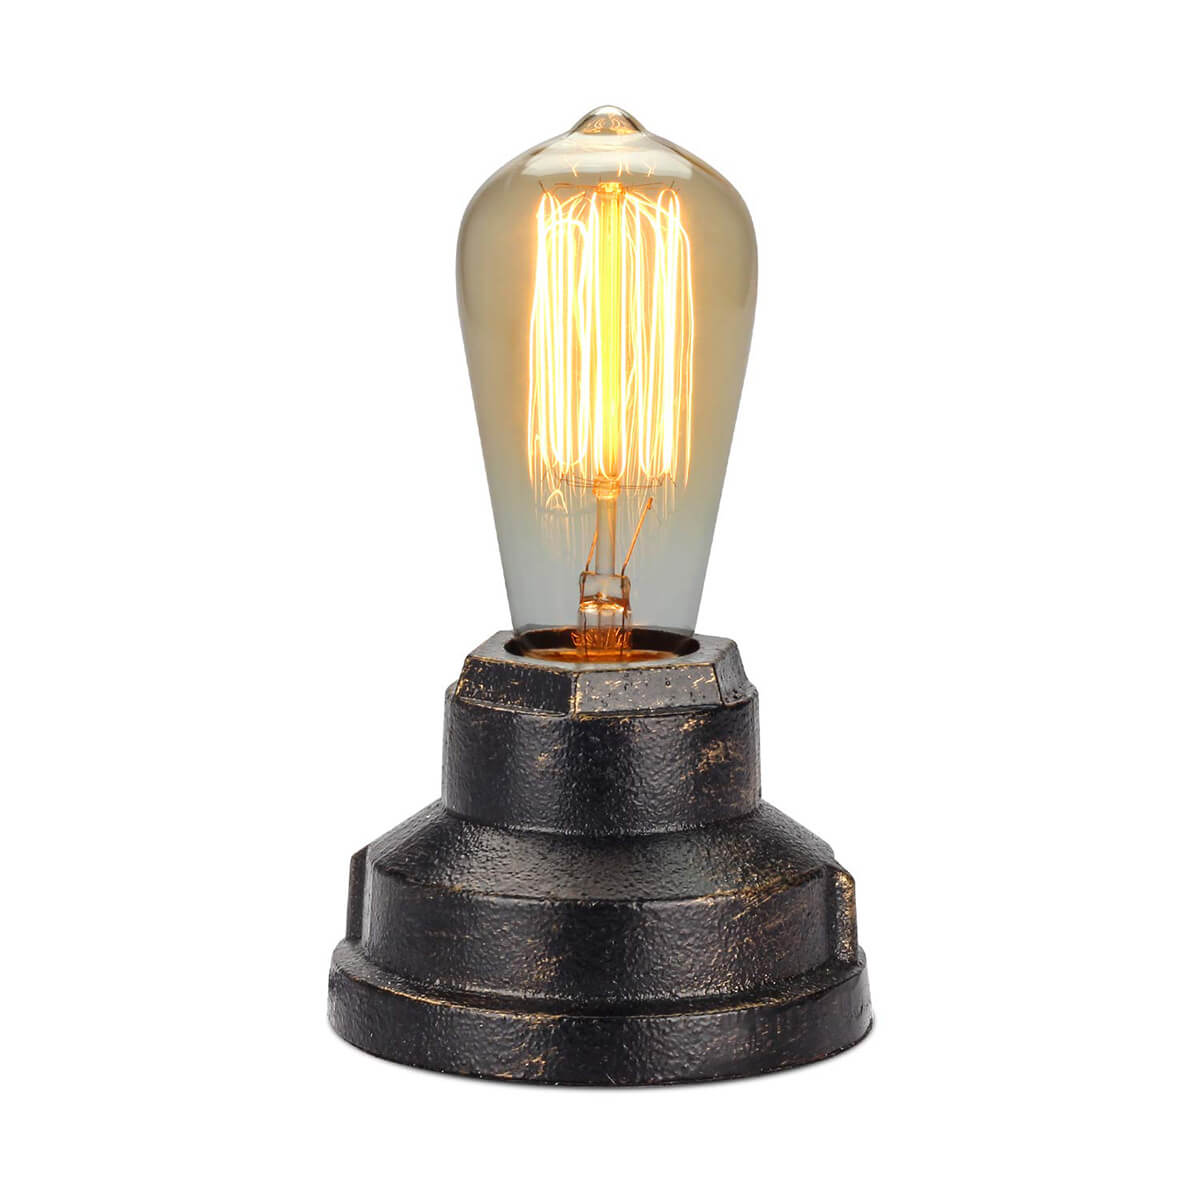 Vintage Decor Dimmable Touch Light